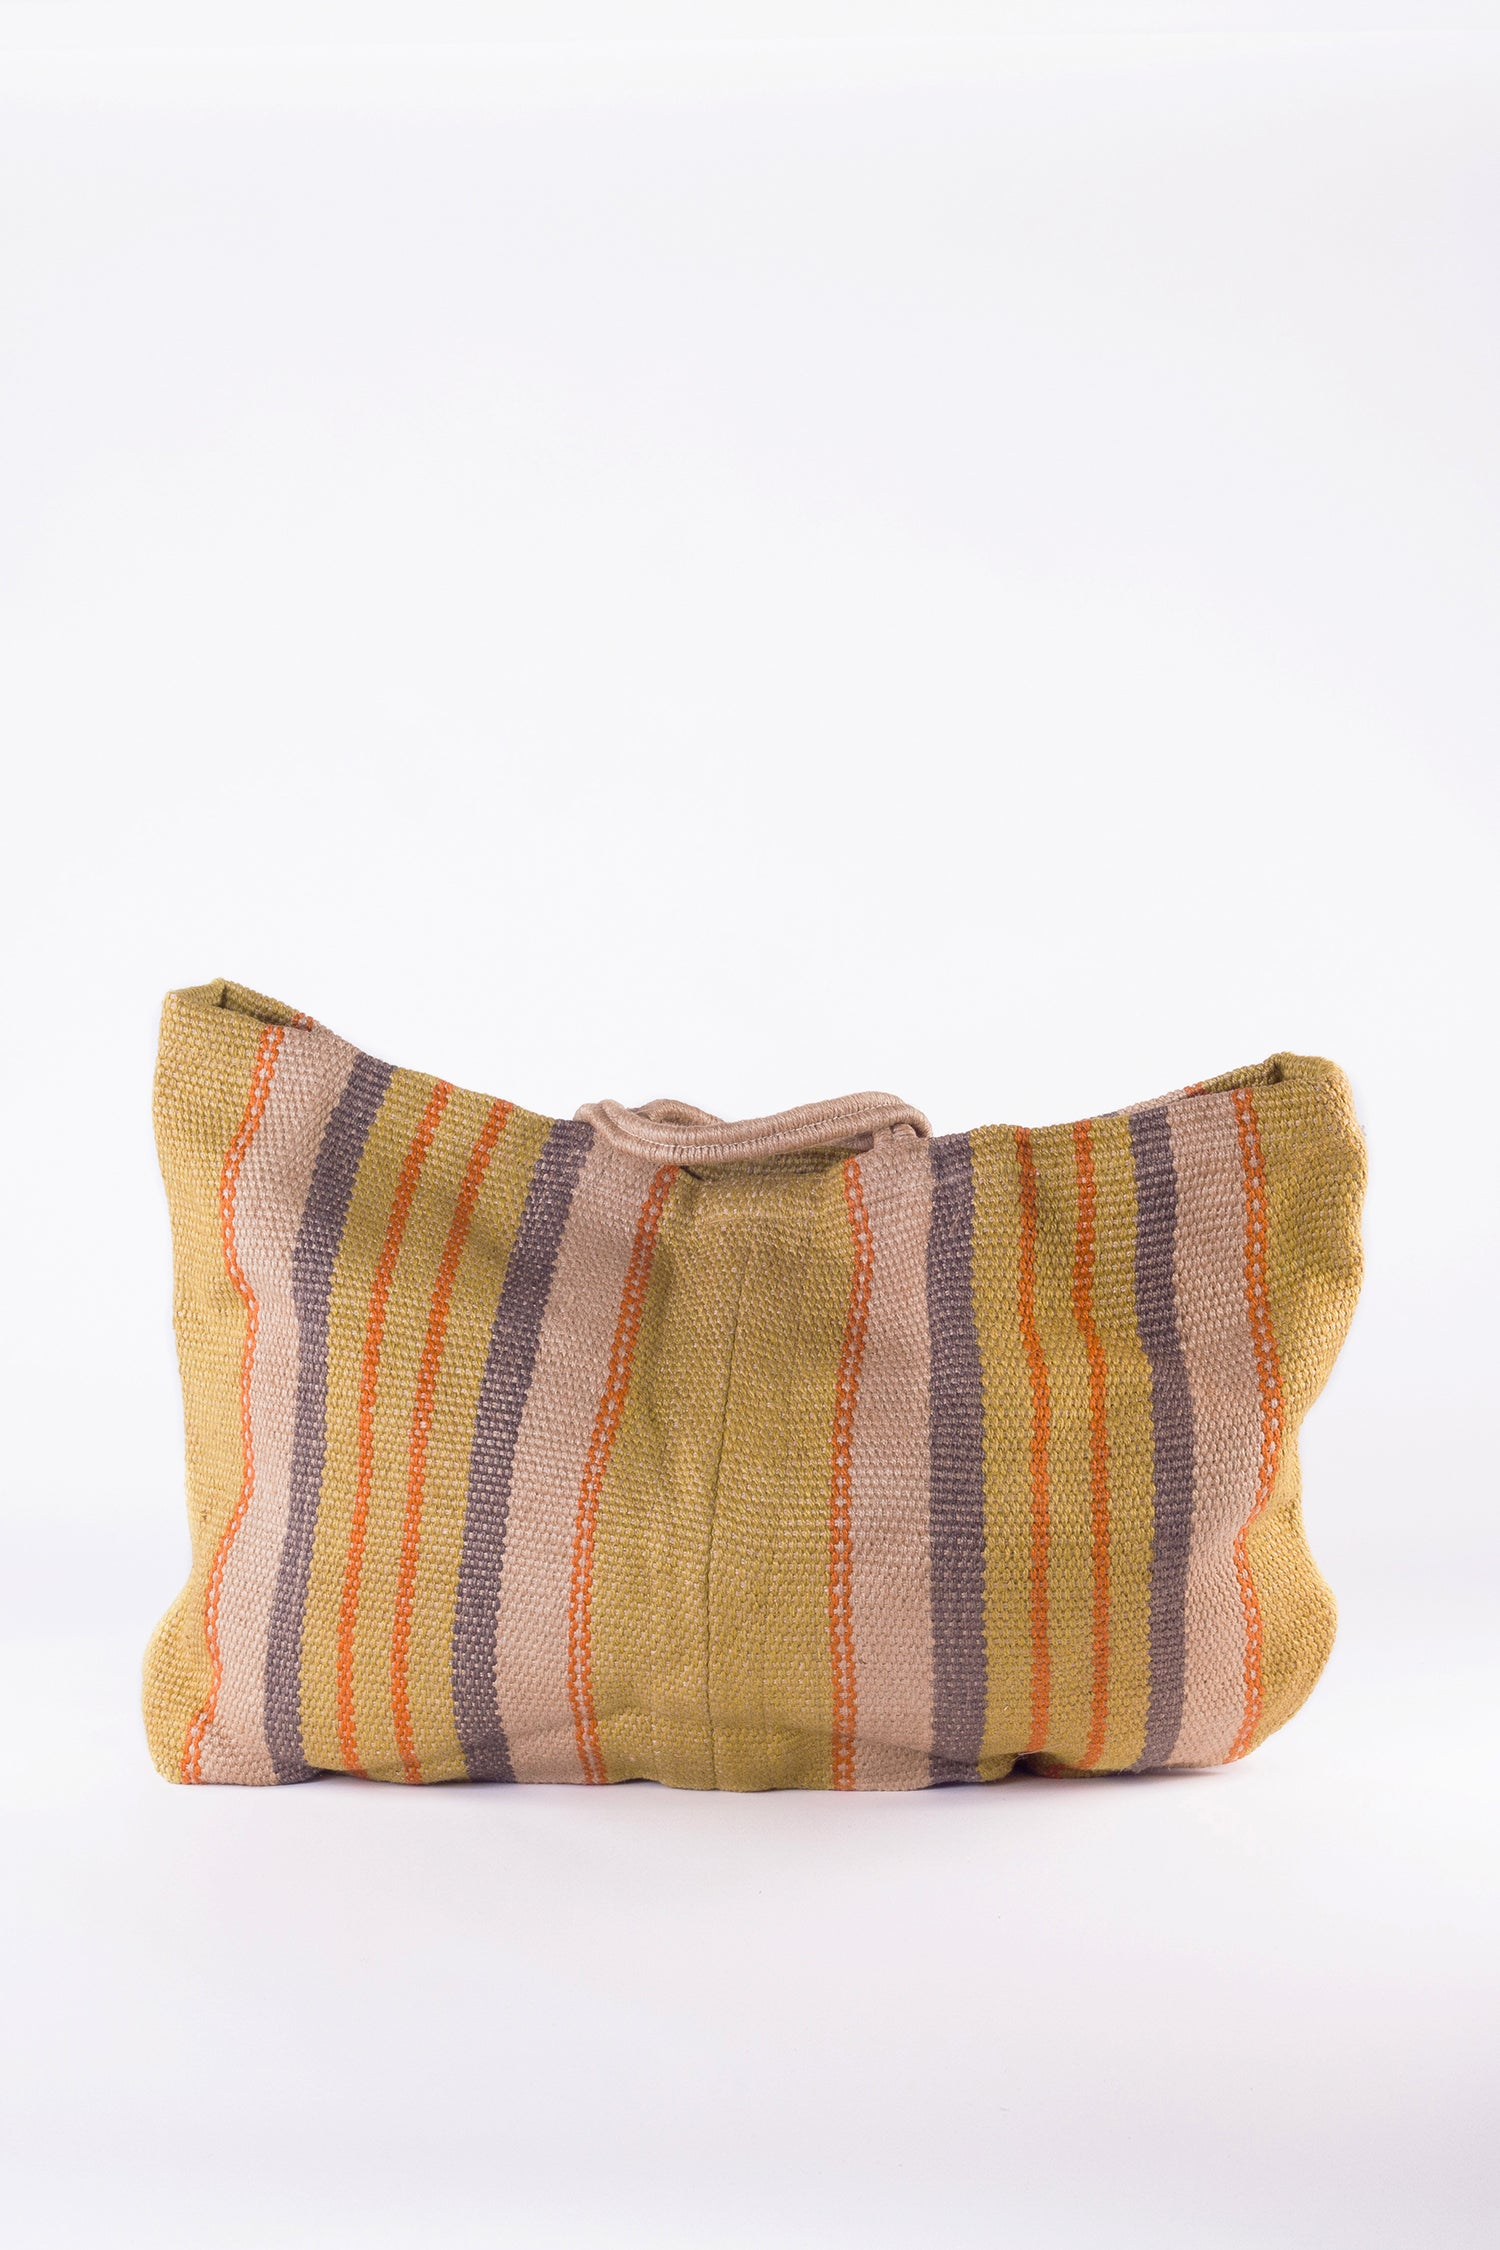 EXTRA LARGE JUTE PORESH HOLD-ALL - YELLOW STRIPE